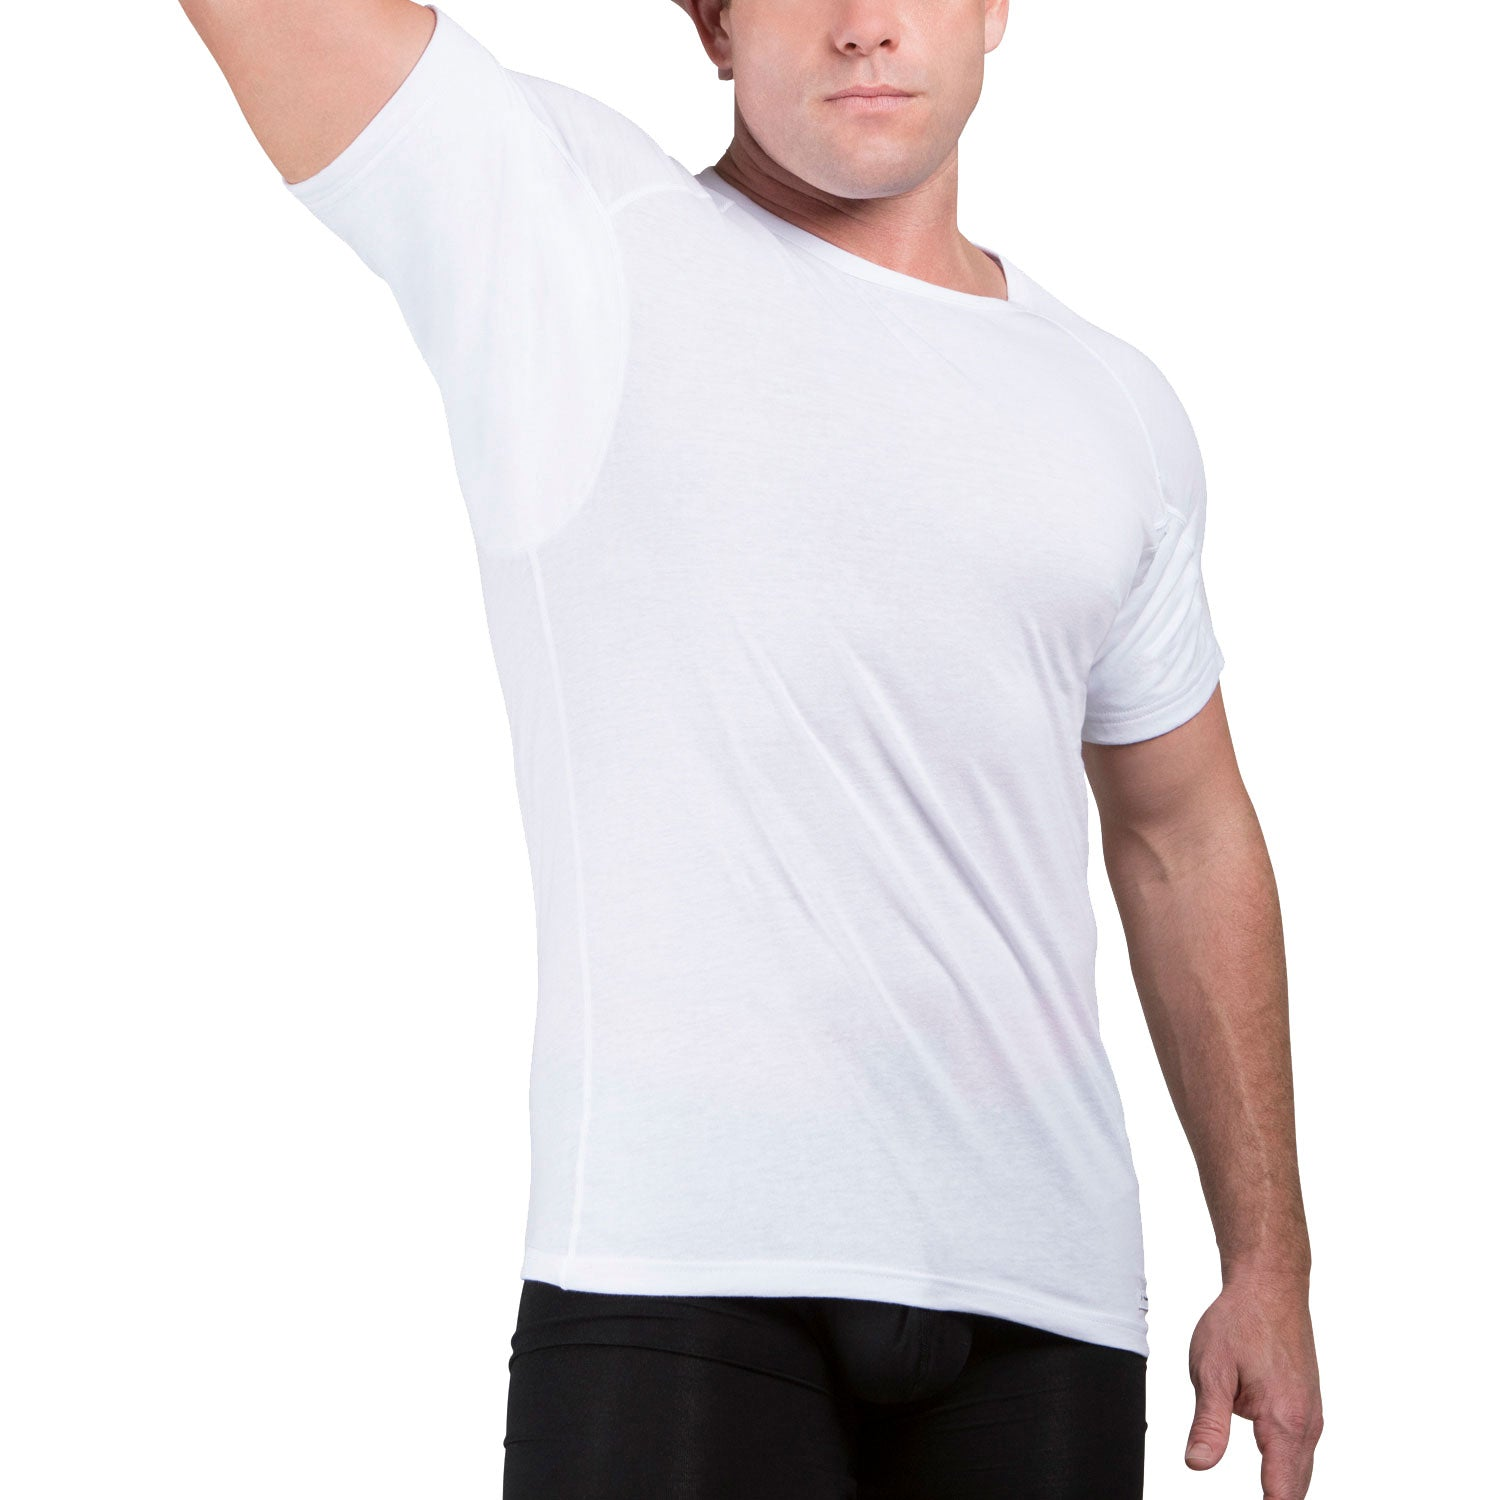 Sweat Defense Undershirt | Crew Neck | Underarm Sweat Proof Cotton